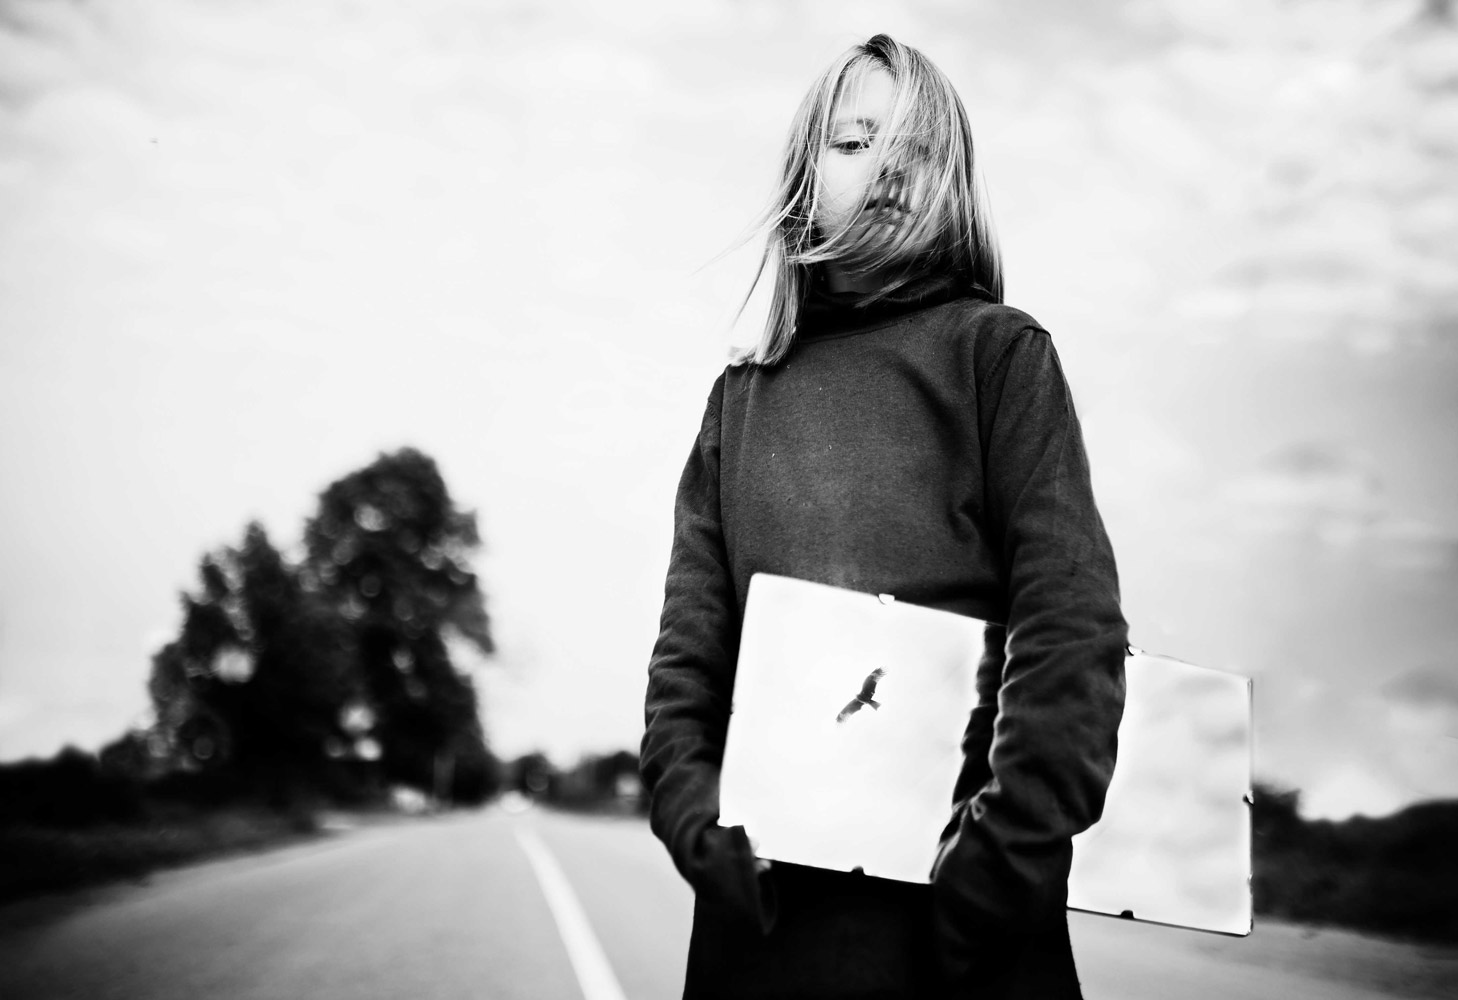 Fly, © Olga Fedorova, Russia, 2nd Place, B&W Child Photo Competition